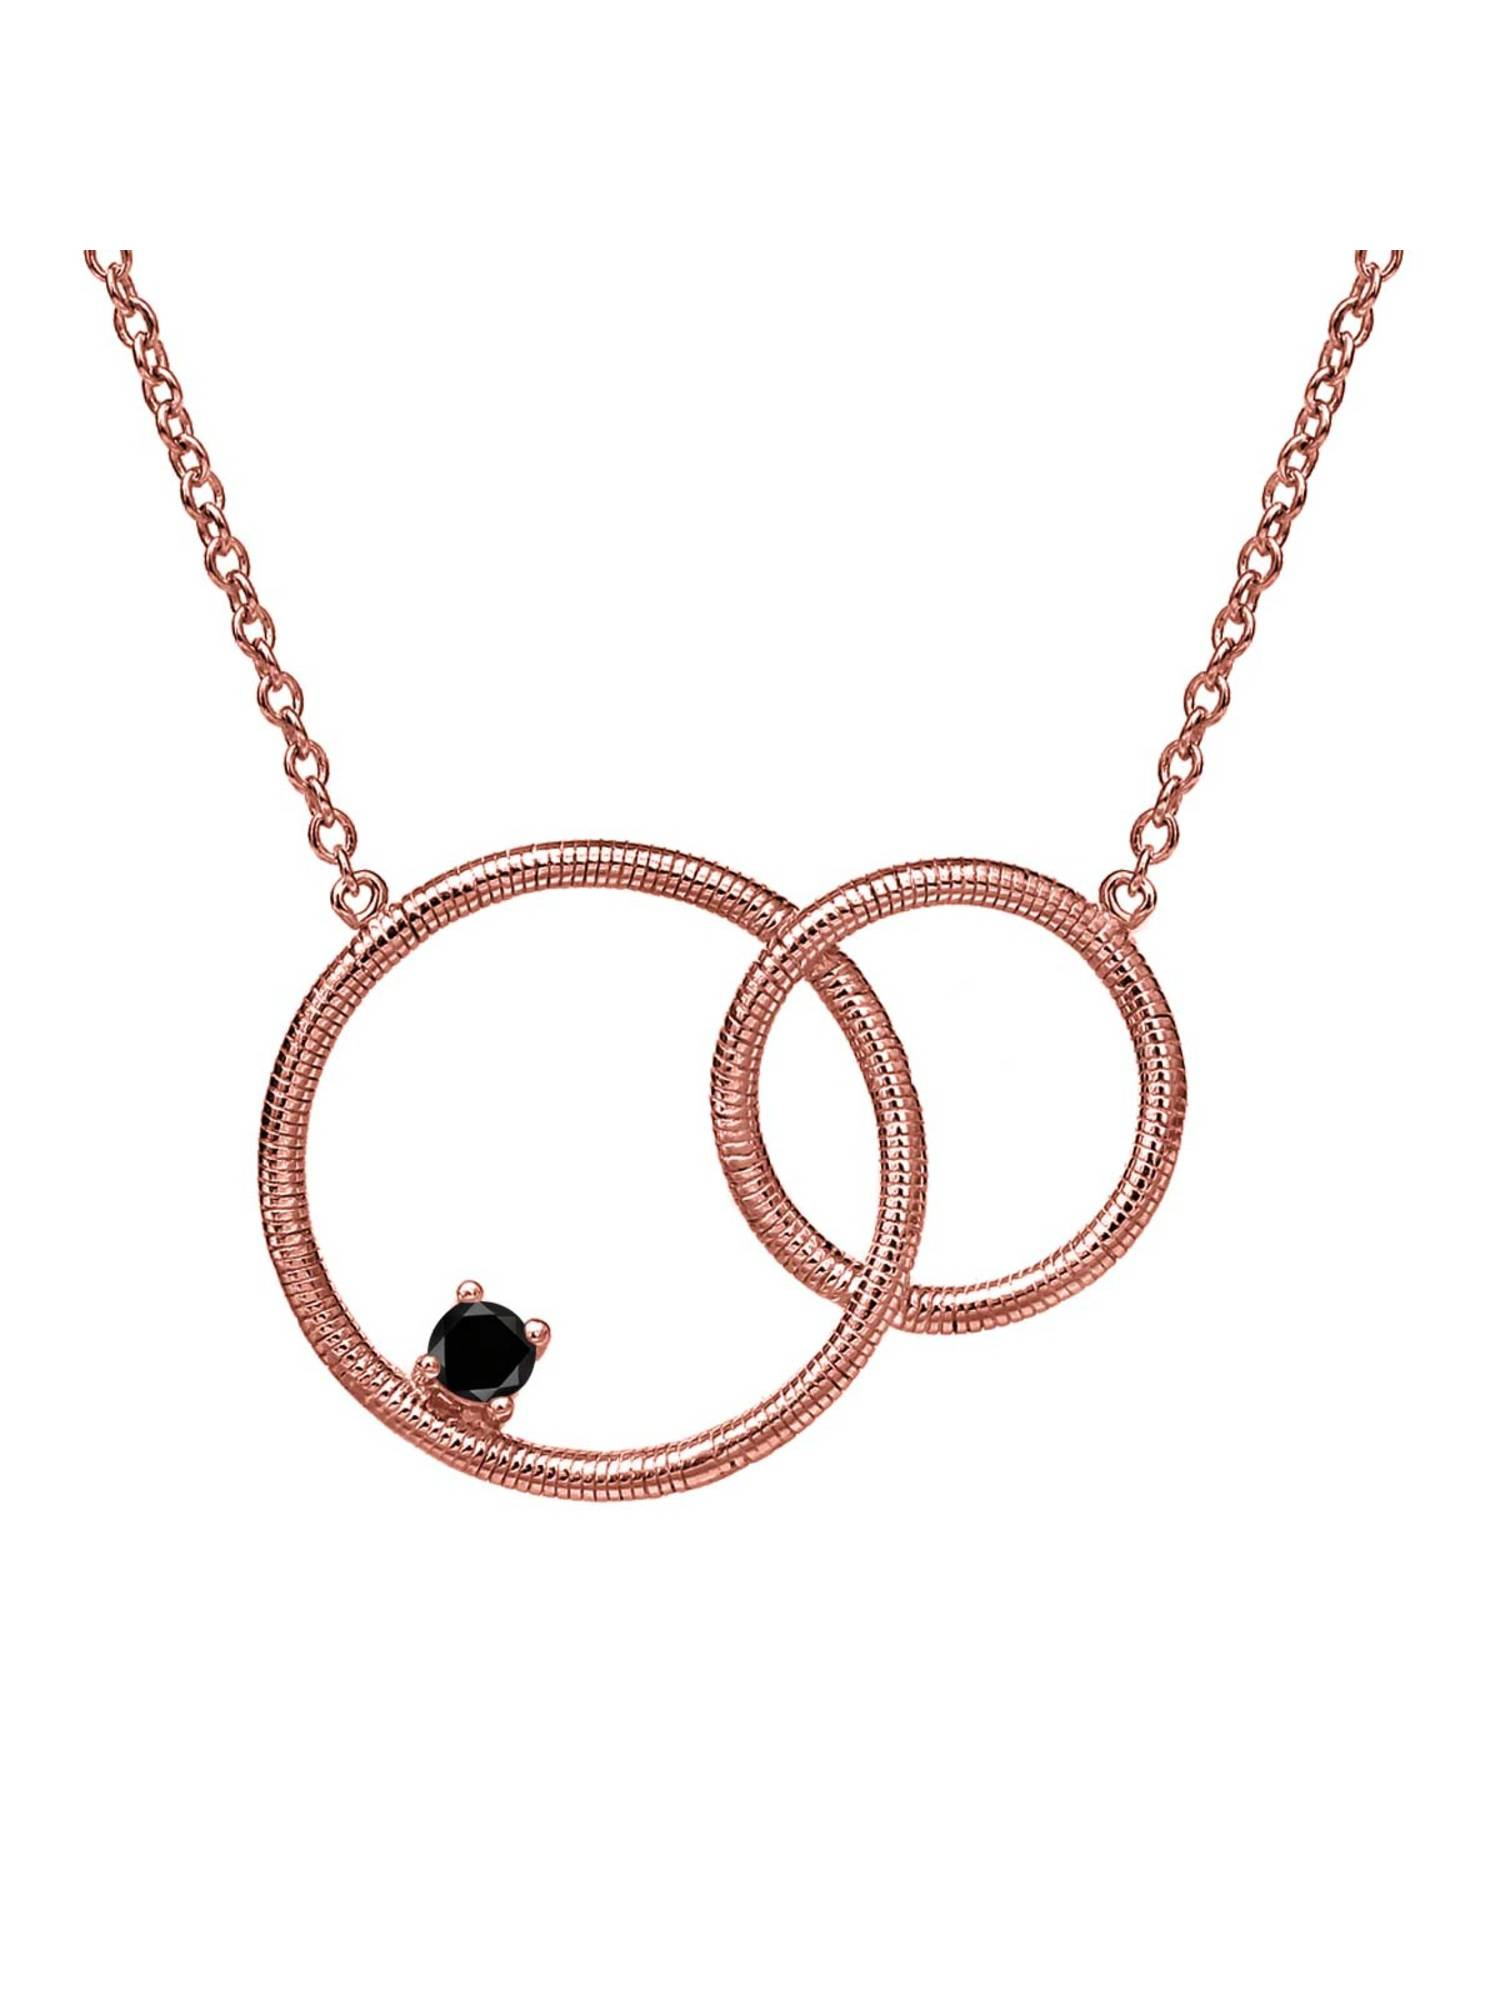 0.12 Ct Round Black Diamond 18K Rose Gold Plated Silver Necklace